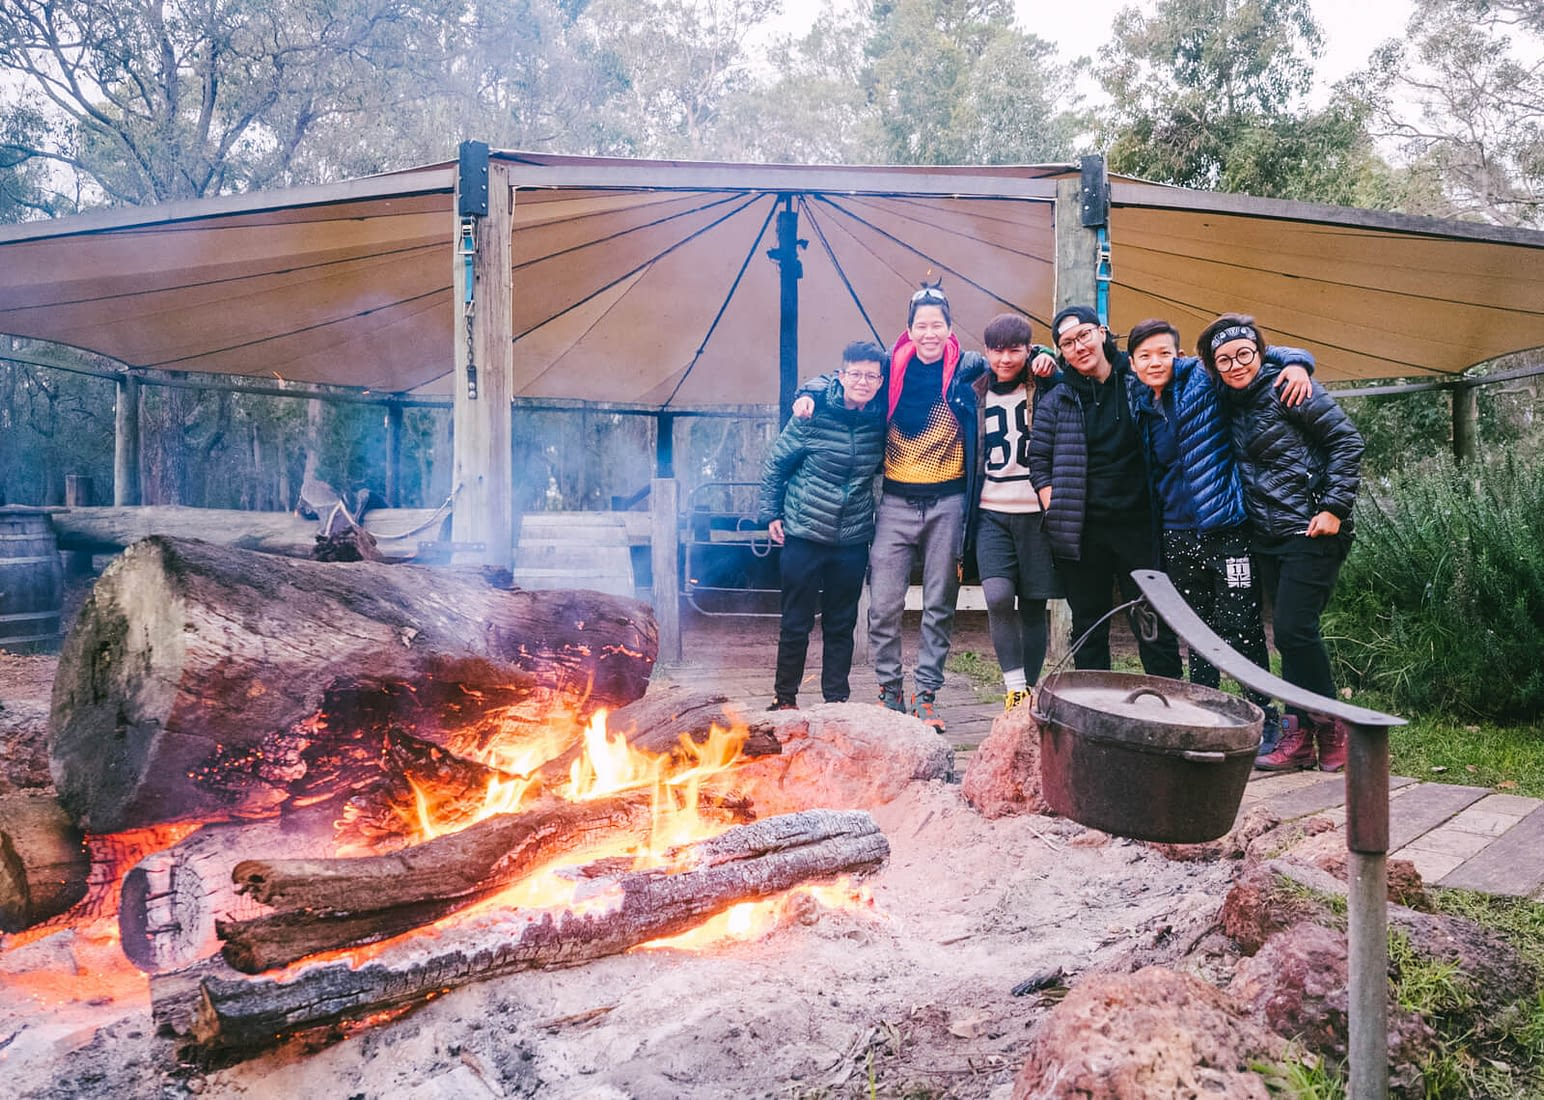 Perth, Australia - Jesters Flat - Warming ourselves at the campfire